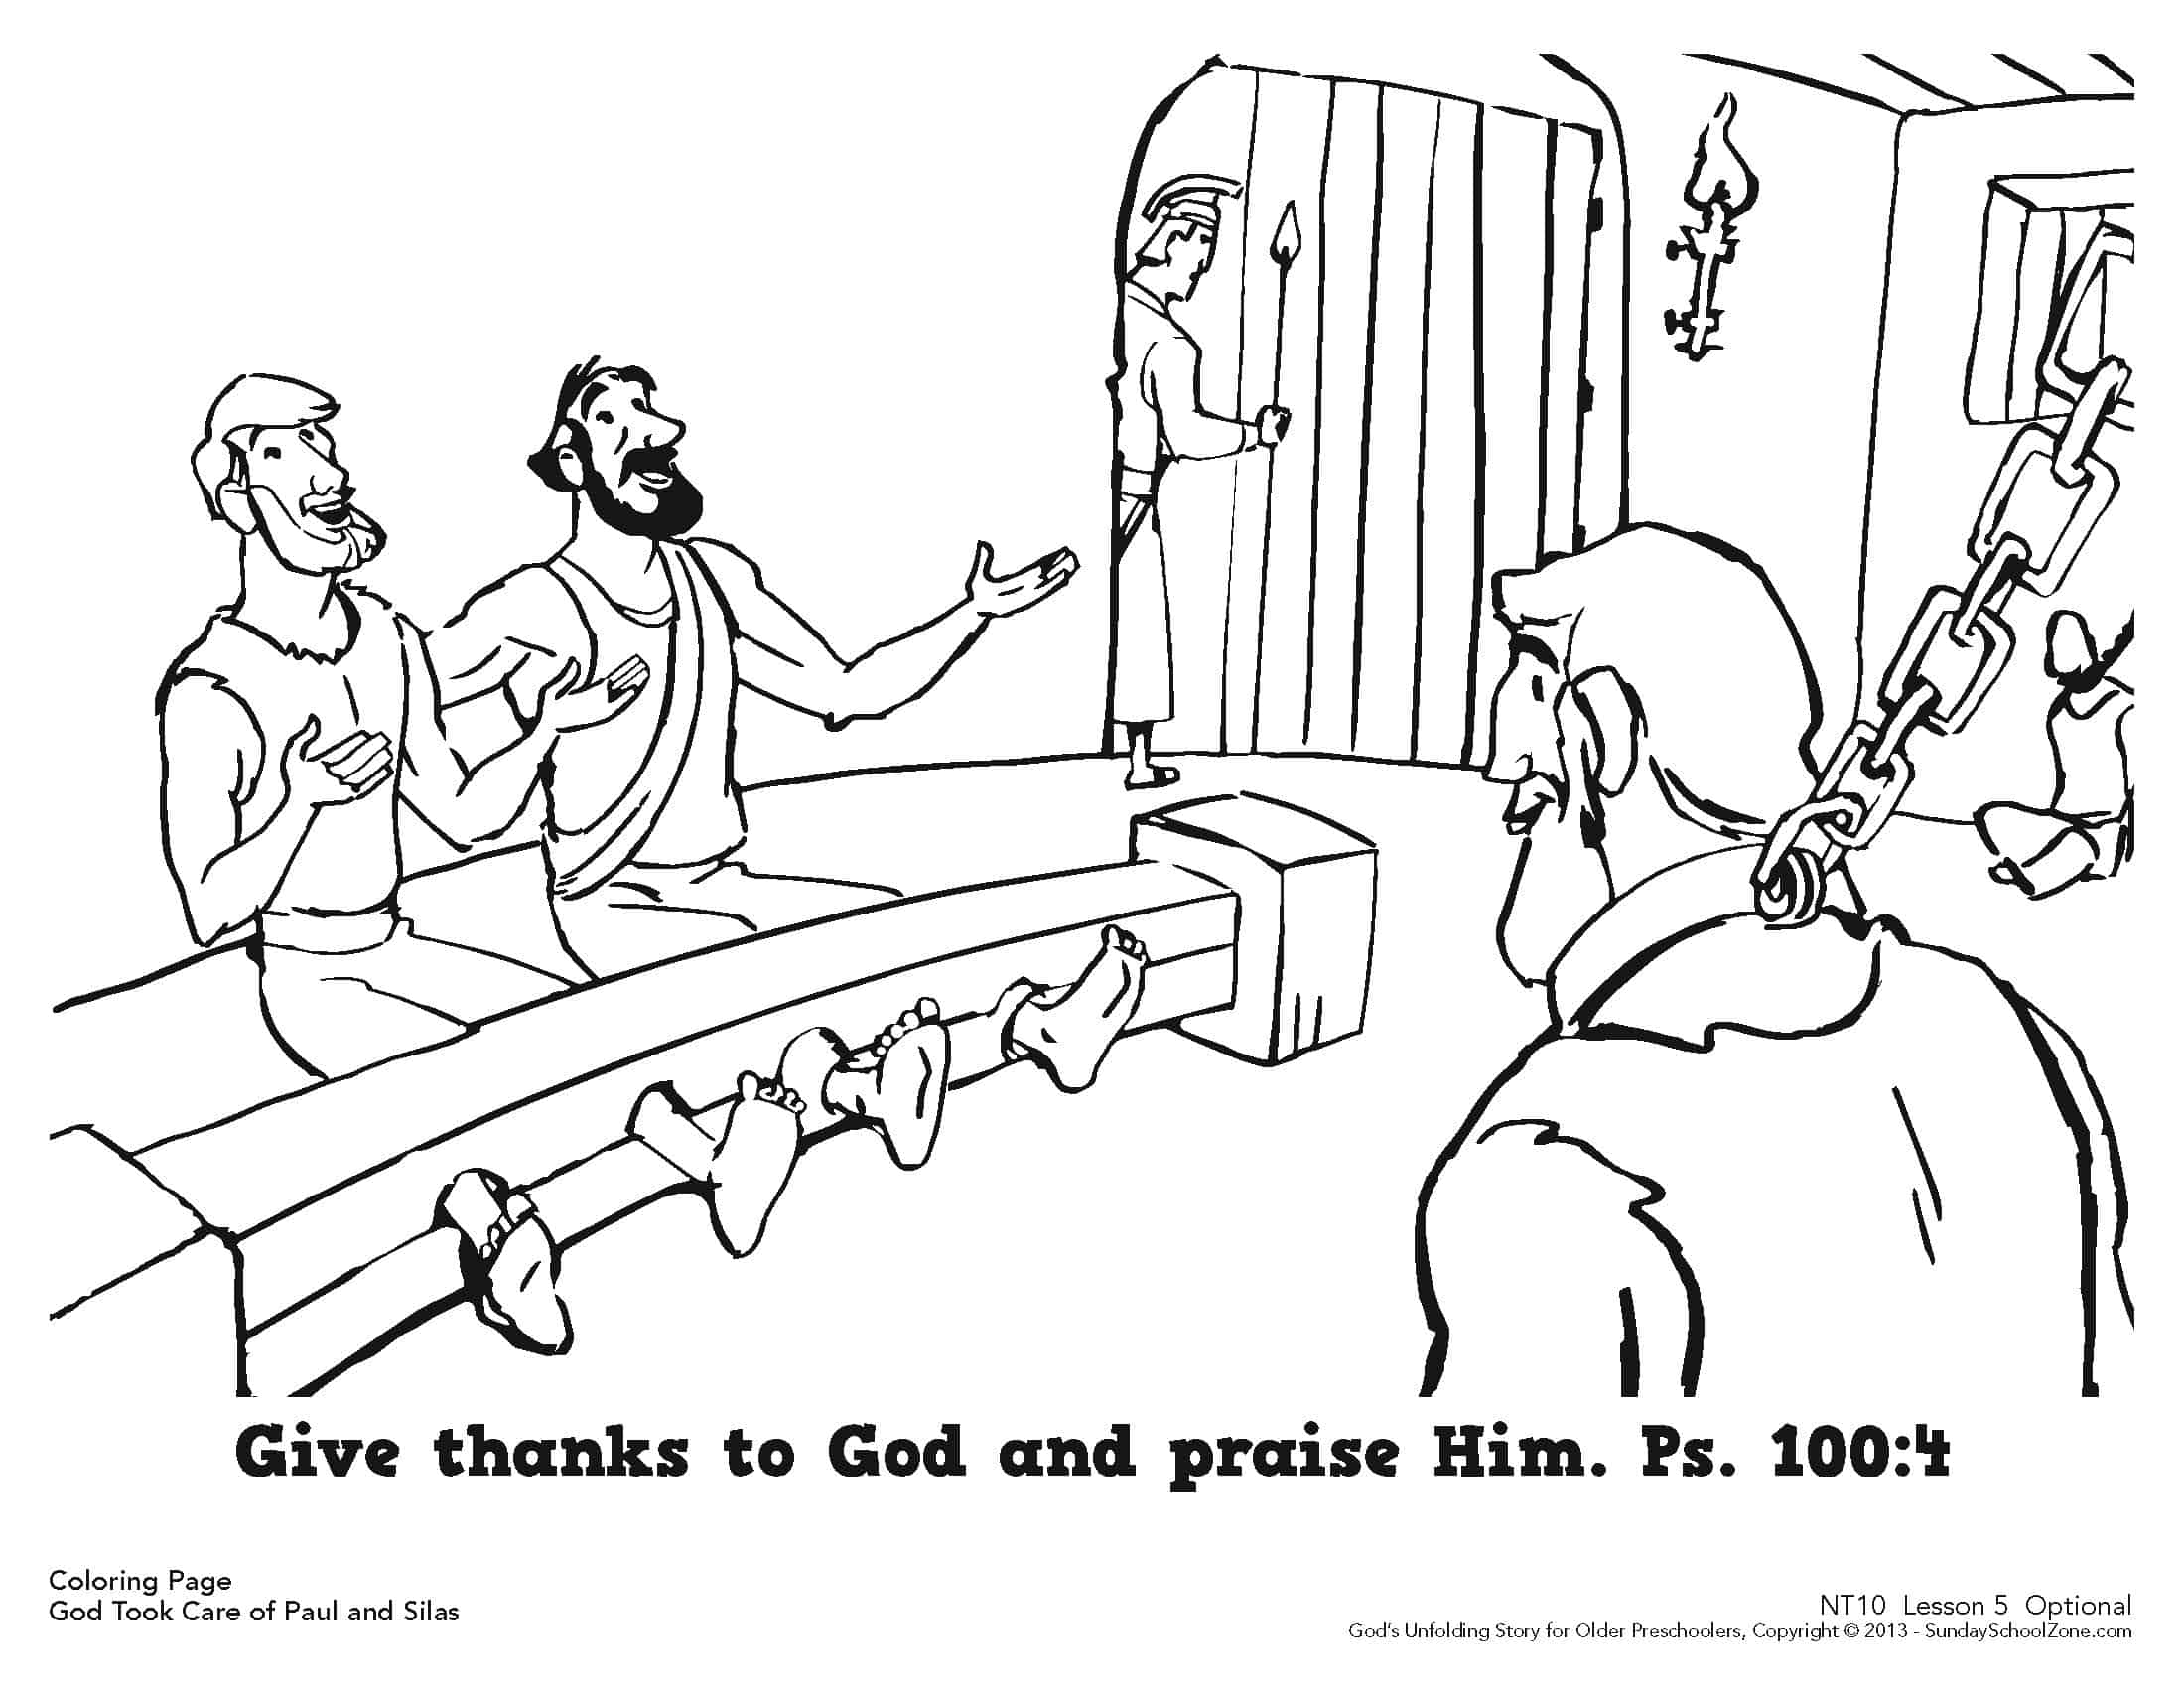 paul and silas coloring page paul and silas coloring pages print paul and silas coloring silas page paul and